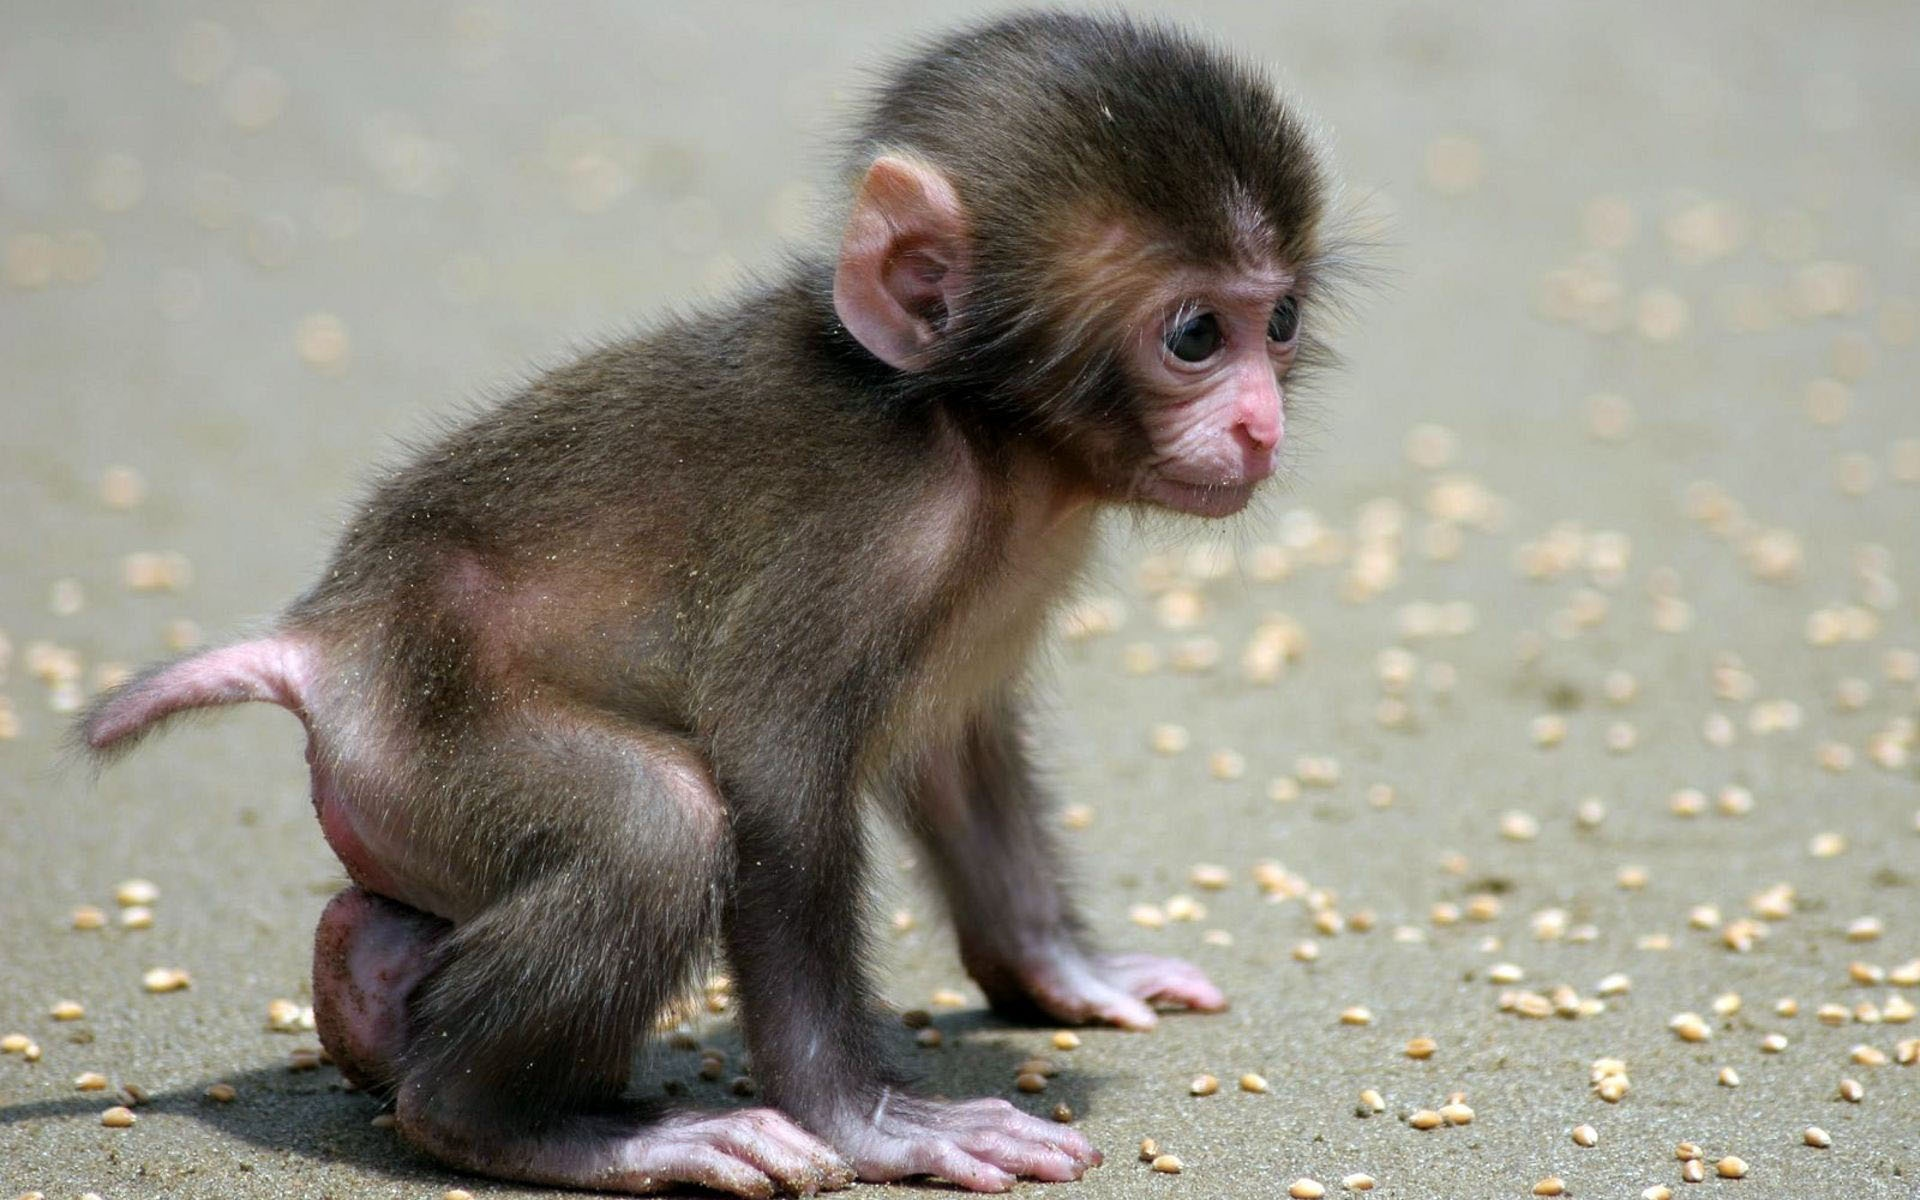 Baby Monkey Wallpaper 944503